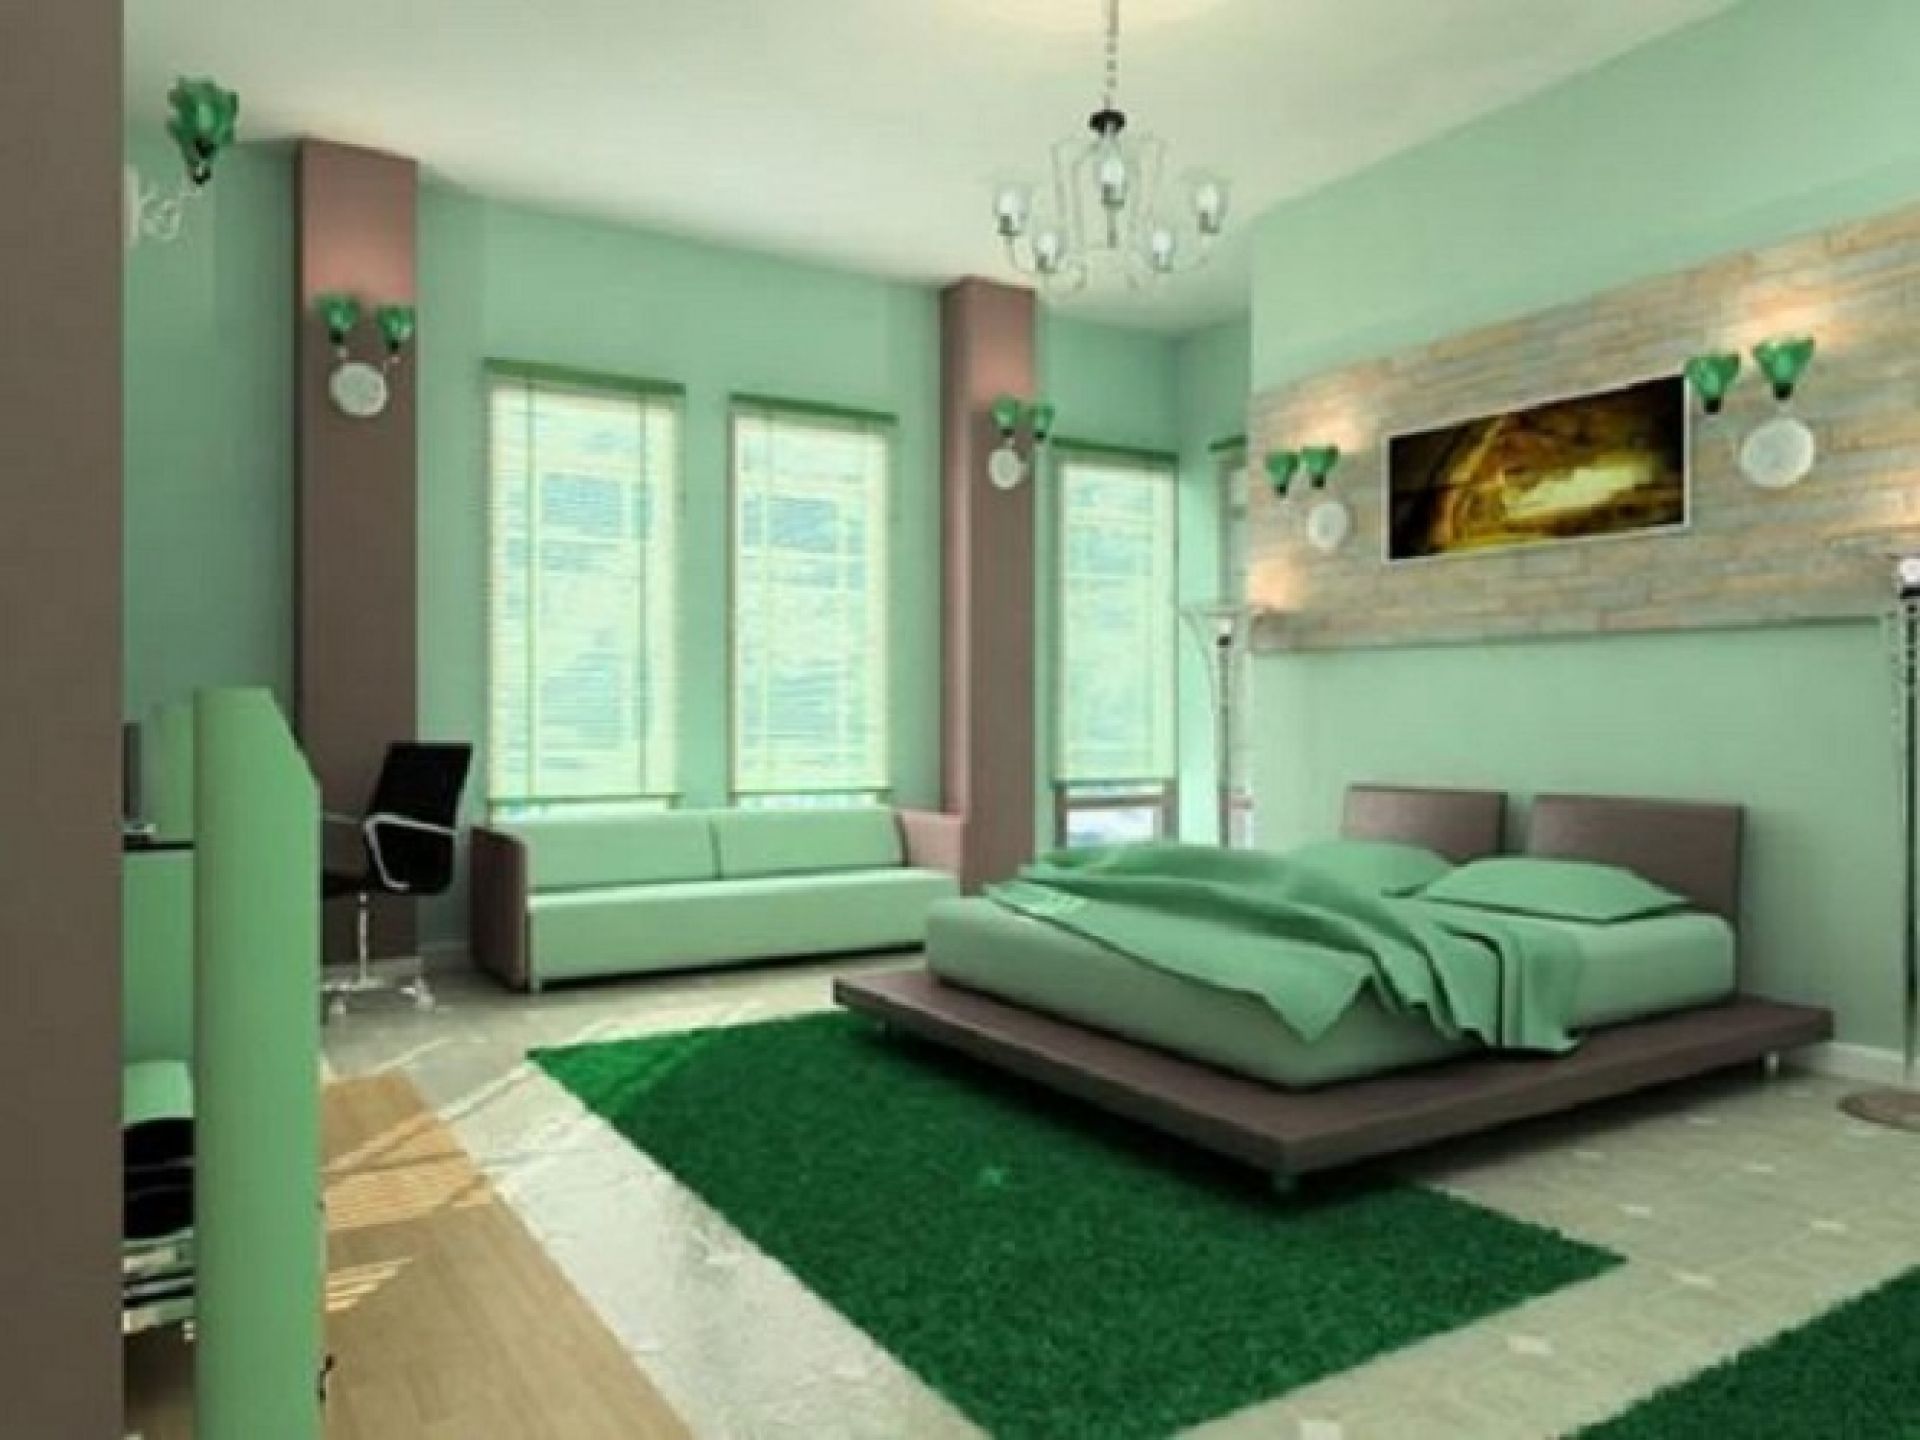 Master bedroom color schemes  Pin by Janet Greene on Remodeling in Color Green  Pinterest